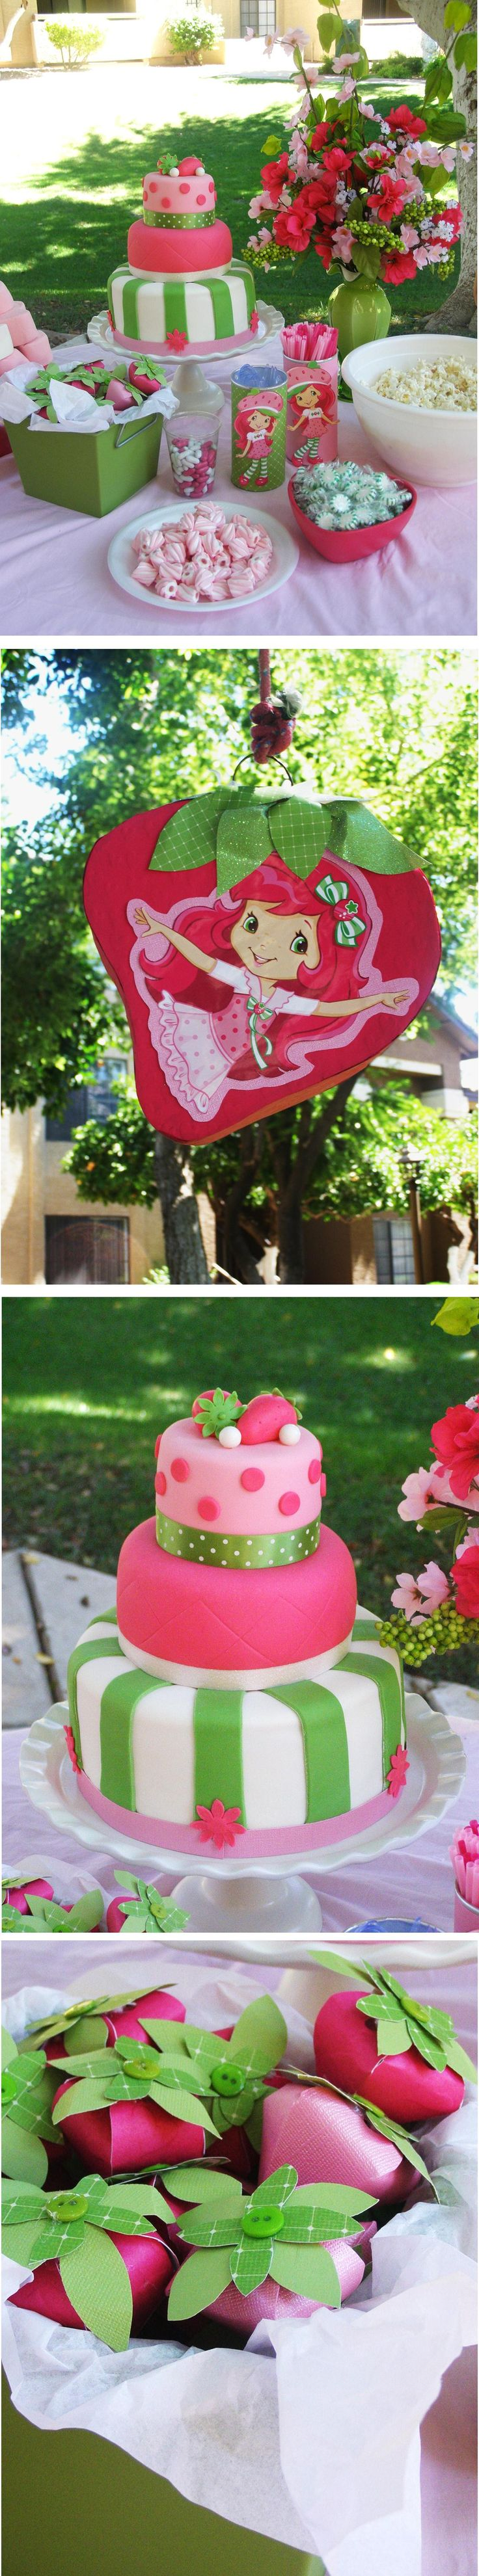 Adorable Strawberry Shortcake party!!